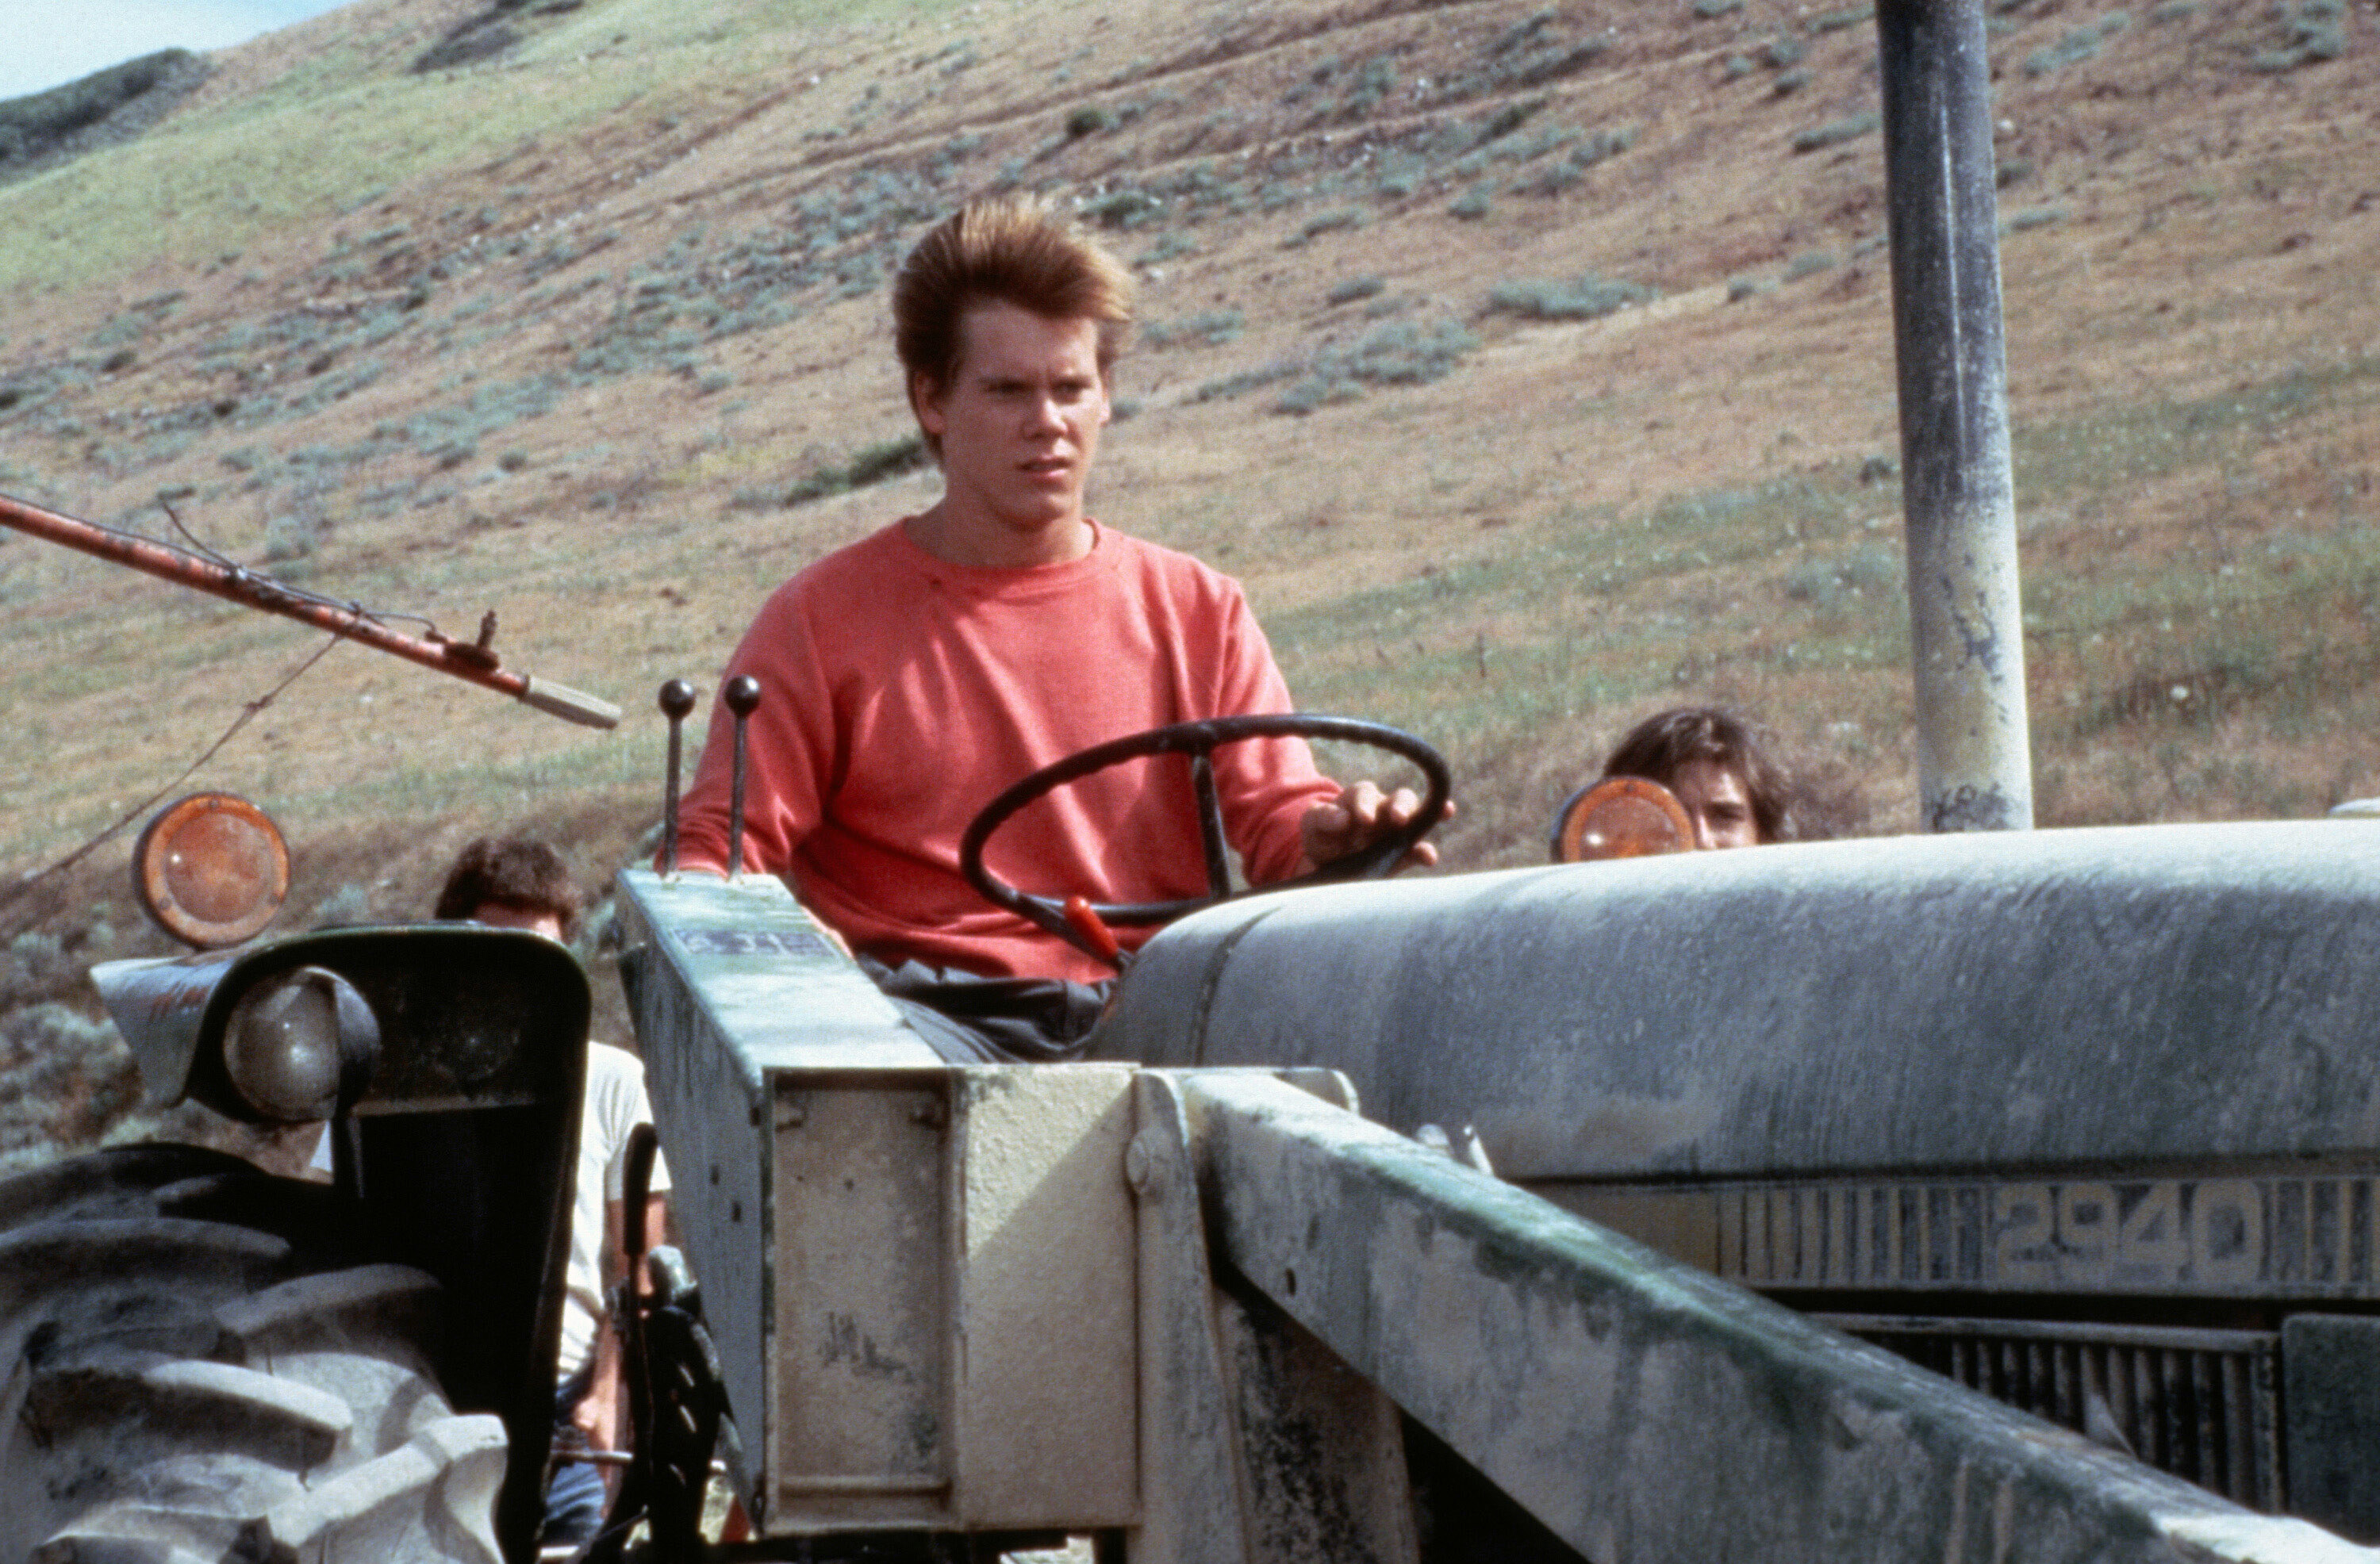 Kevin Bacon on a tractor in the movie Footloose